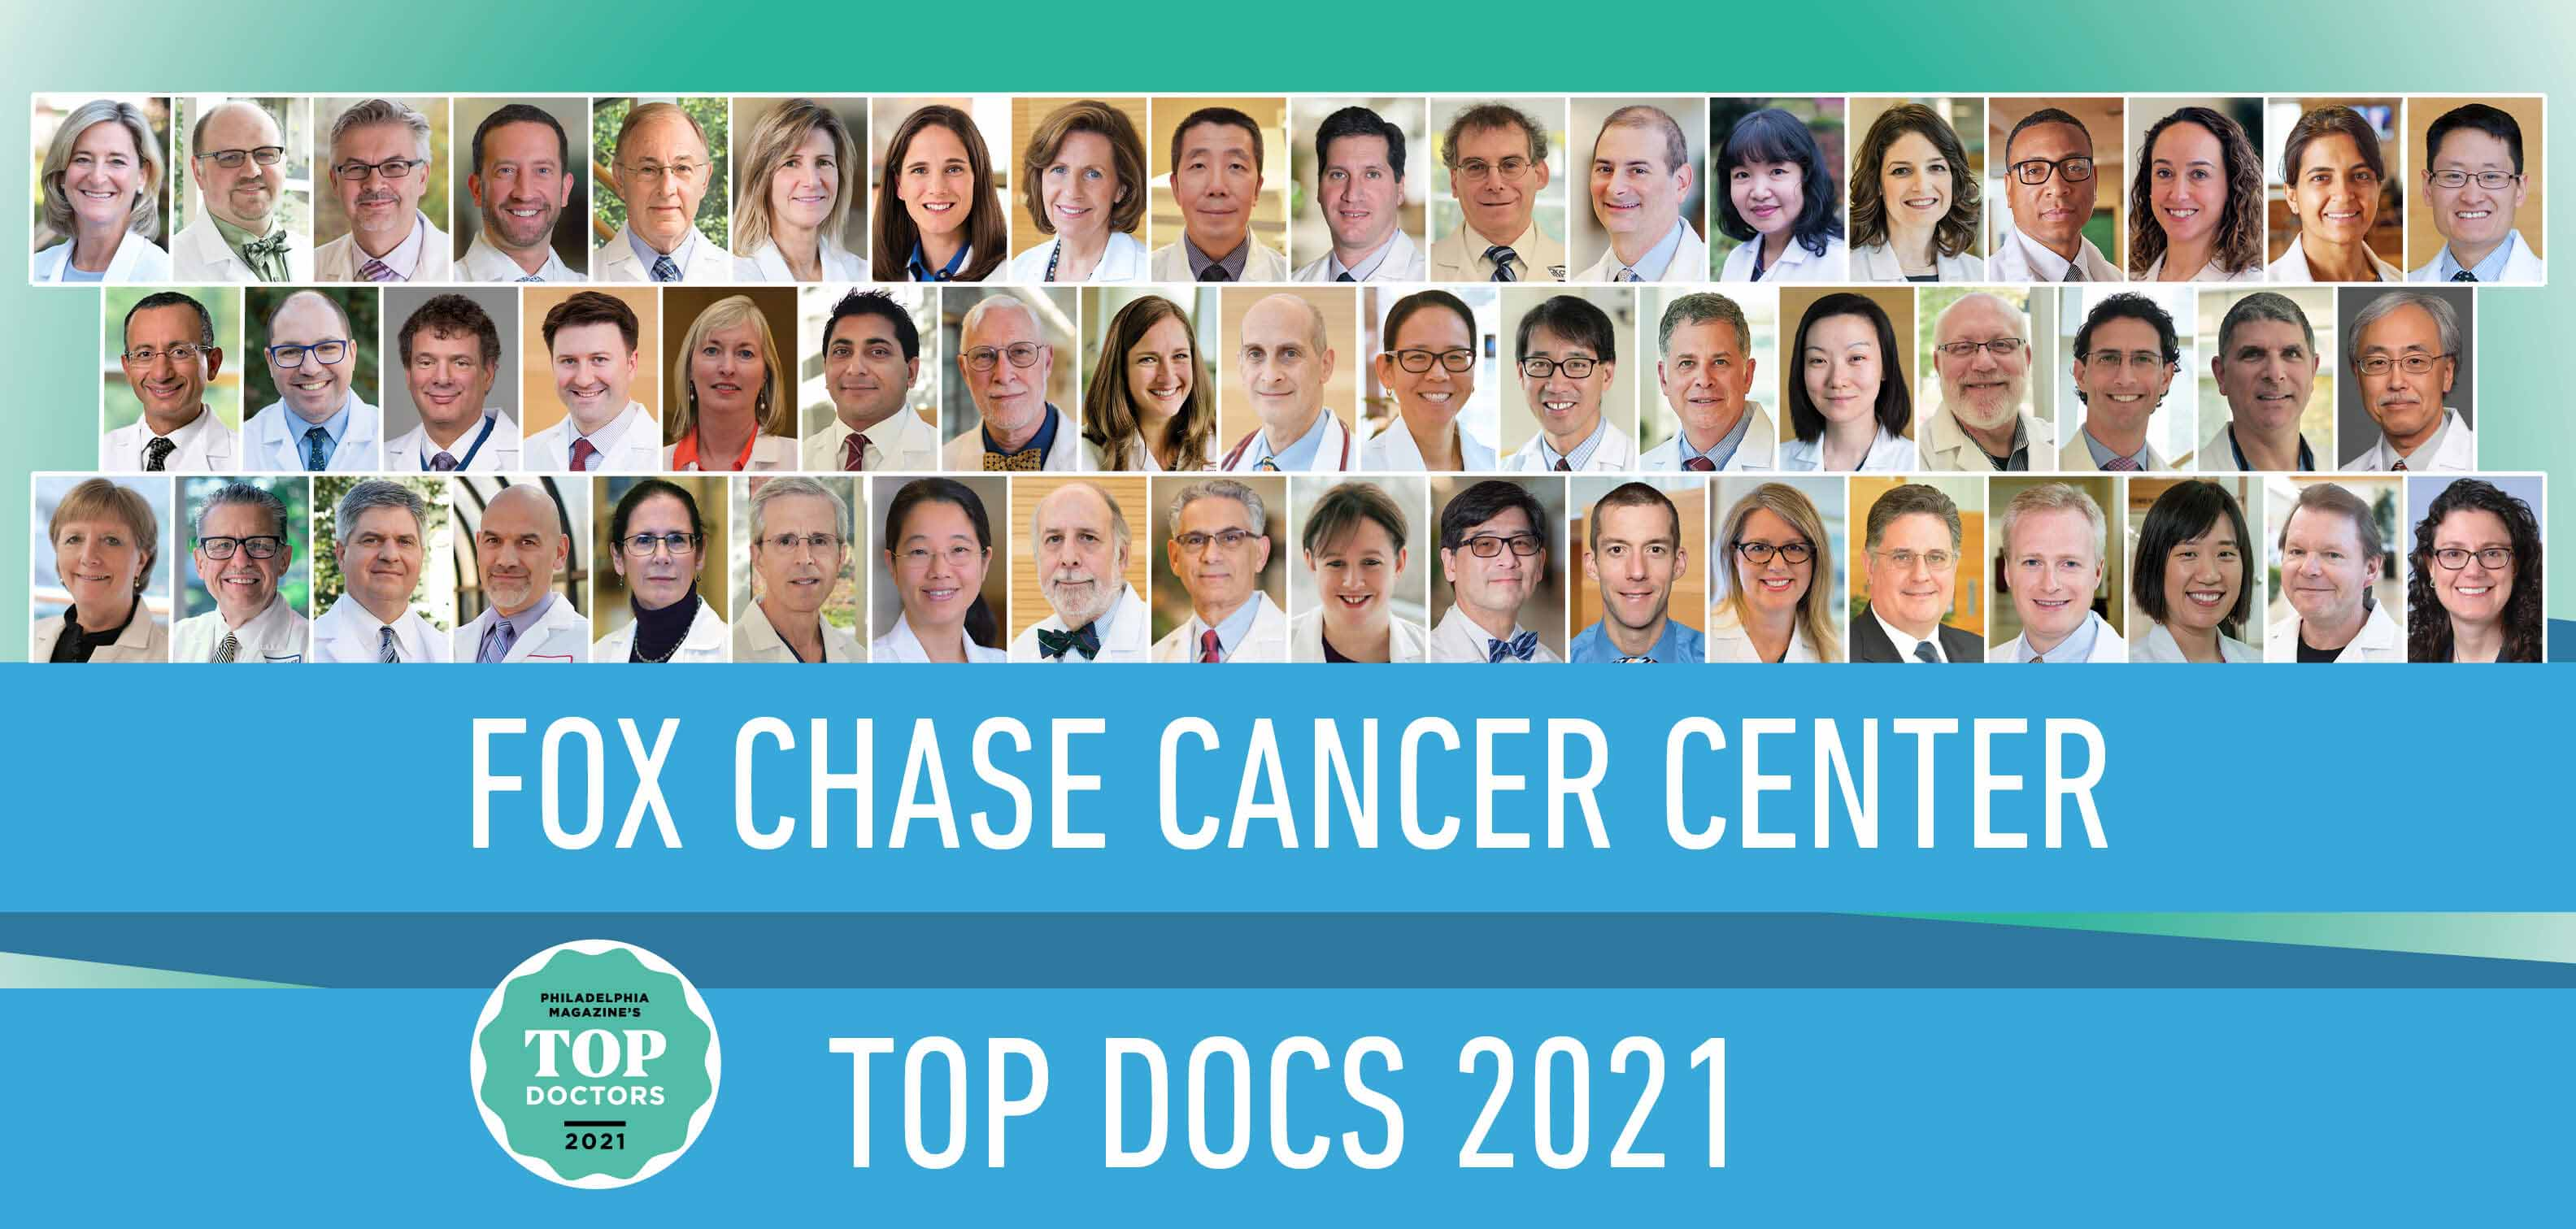 Top Doctors 2021. 53 Fox Chase Cancer Center Physicians